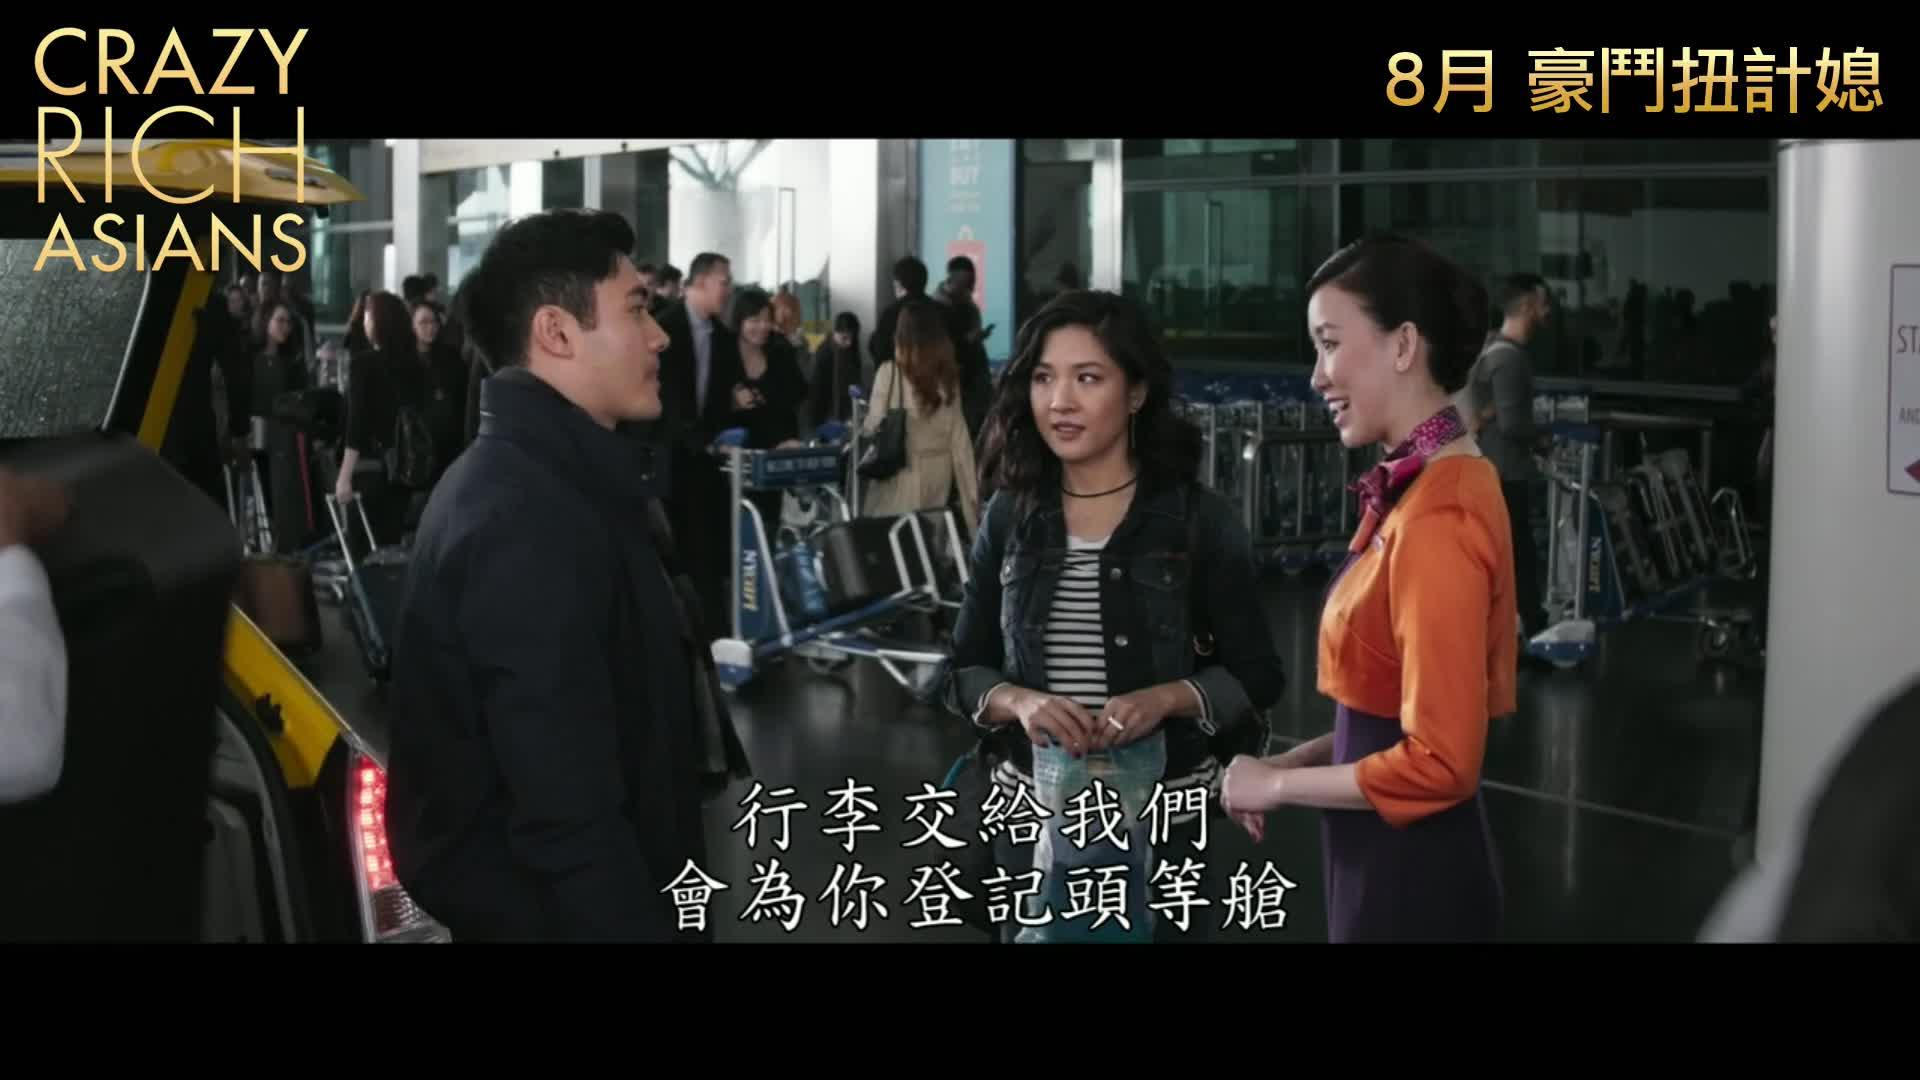 《Crazy Rich Asians》中文版預告